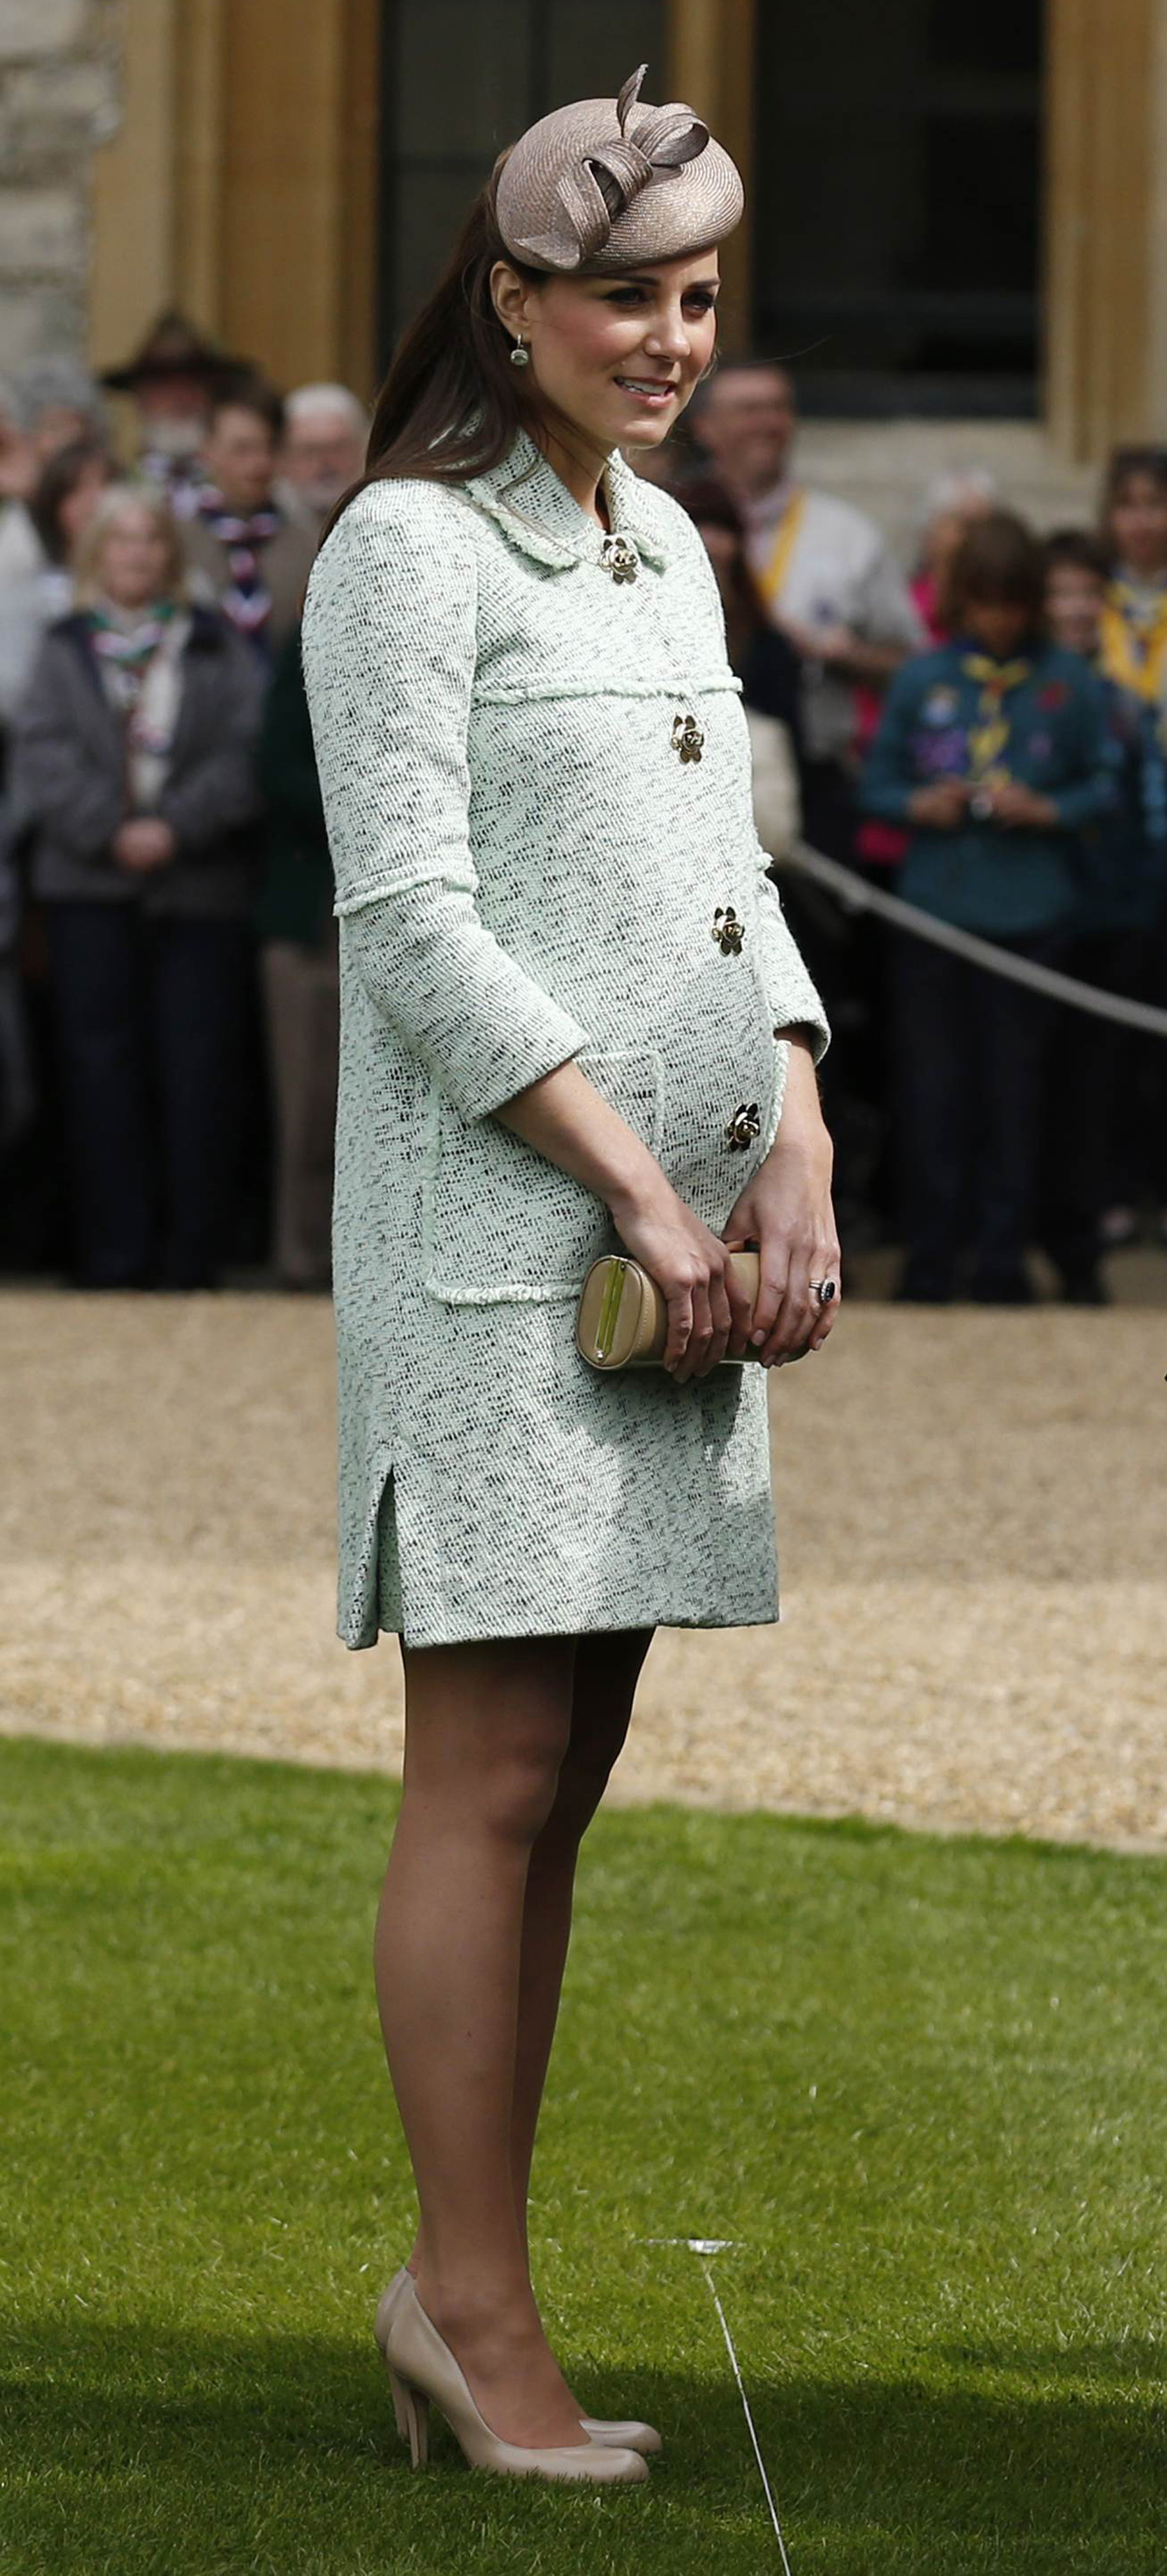 Catherine, Duchess of Cambridge during the National Review of Queen's Scouts at Windsor Castle in Berkshire on April 21, 2013.